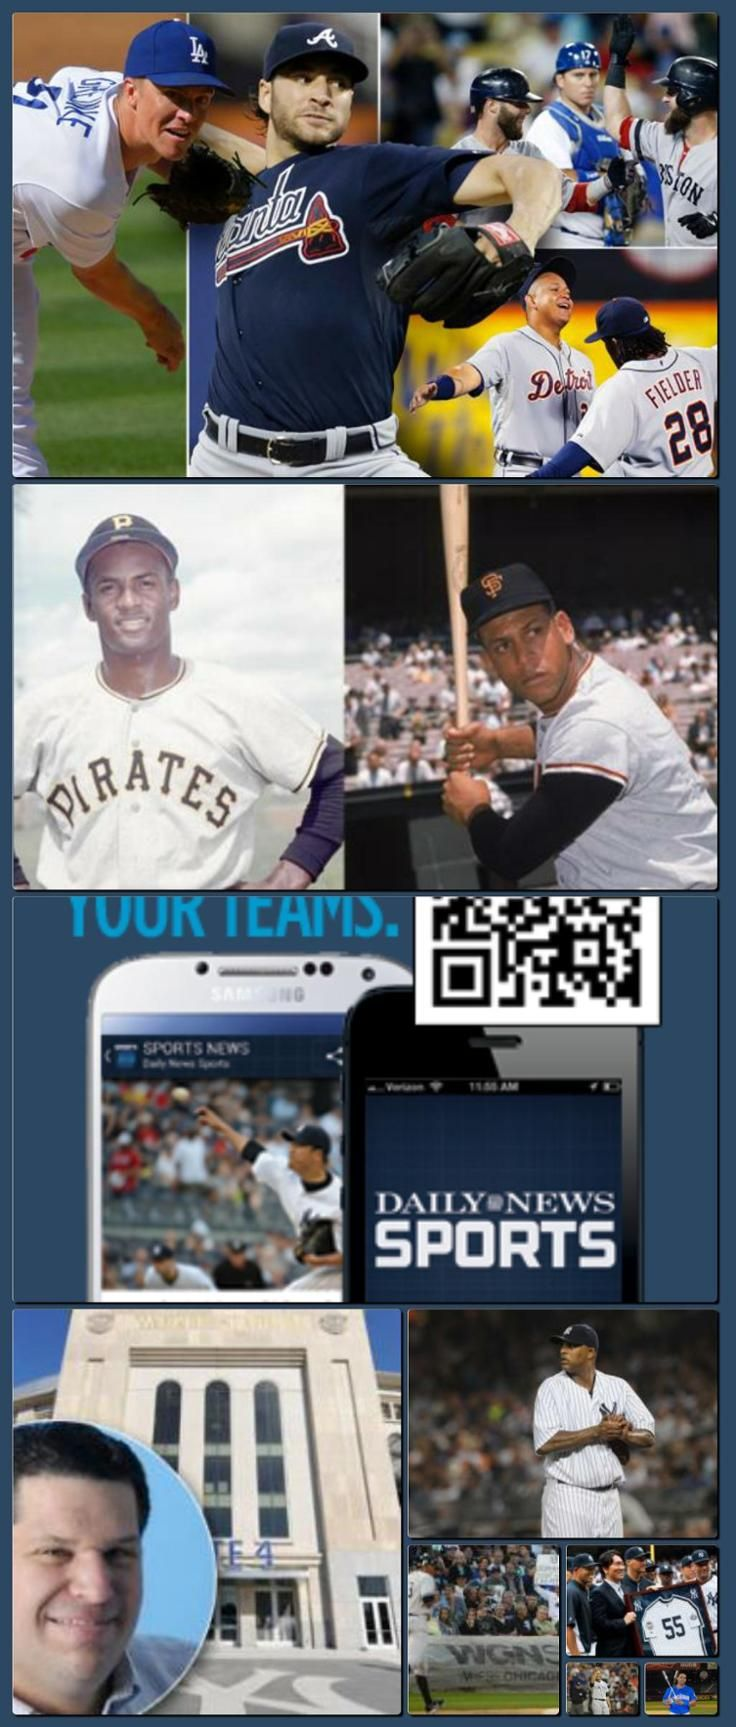 New York Baseball, Yankees, Mets, Stats, Photos and Stories - Homepage - NY Daily News [Collage made with one click using http://pagecollage.com] #pagecollage